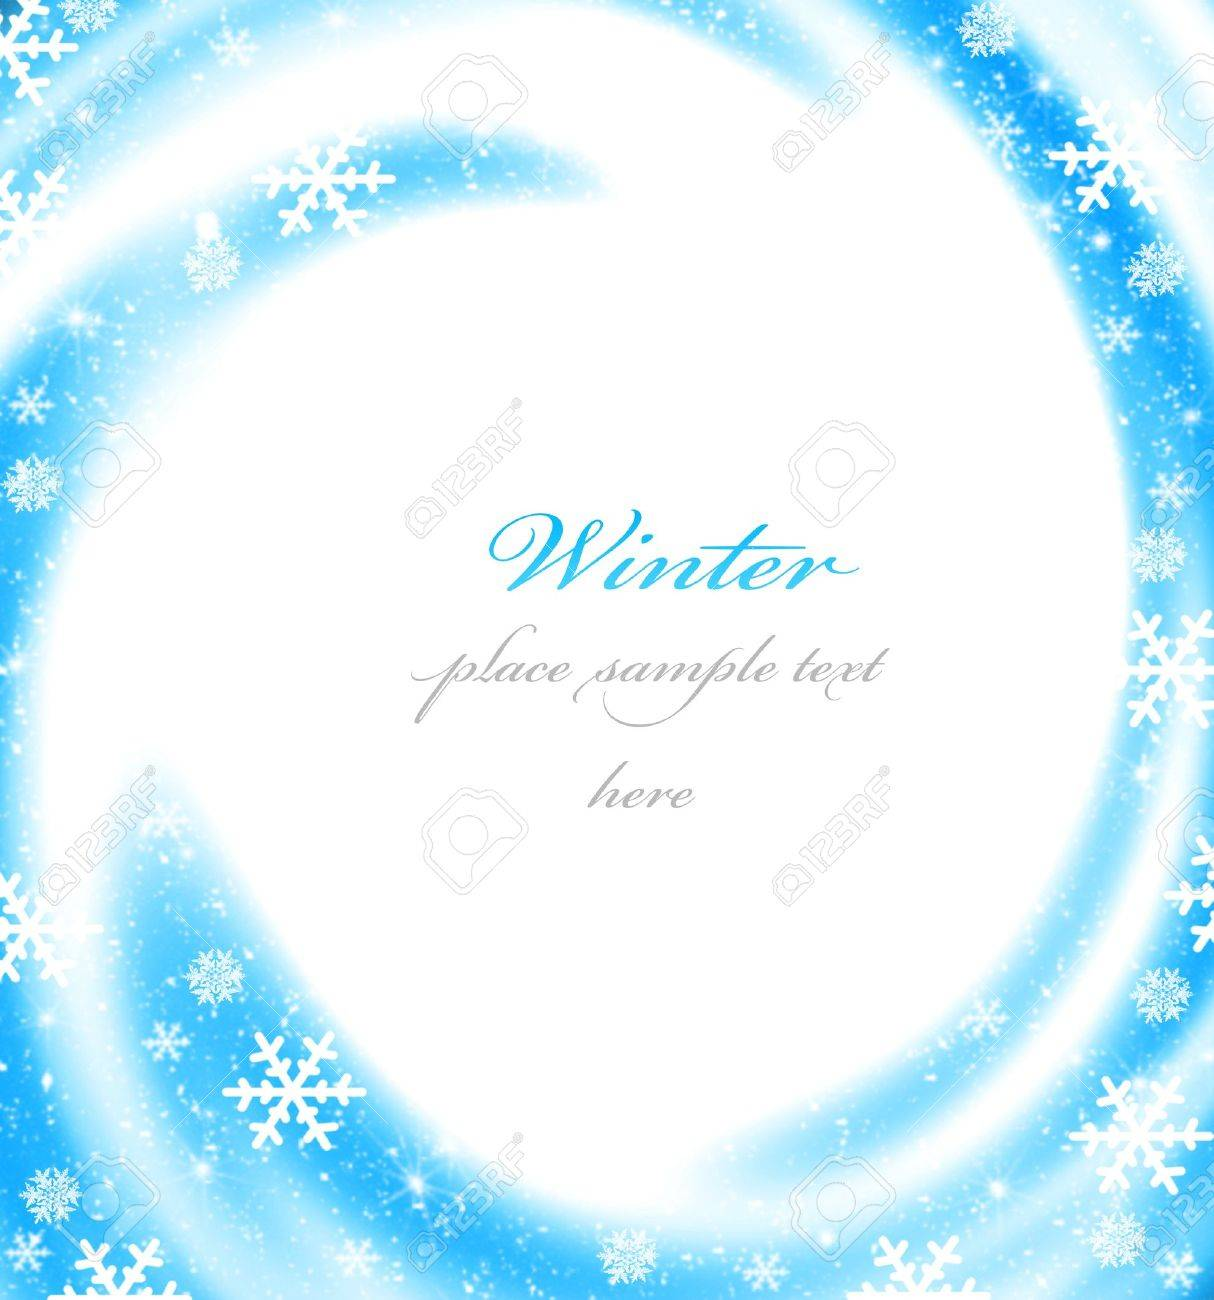 Abstract Christmas Border Card Decoration With Blue Winter Ornament As Holiday Frame Background Stock Photo